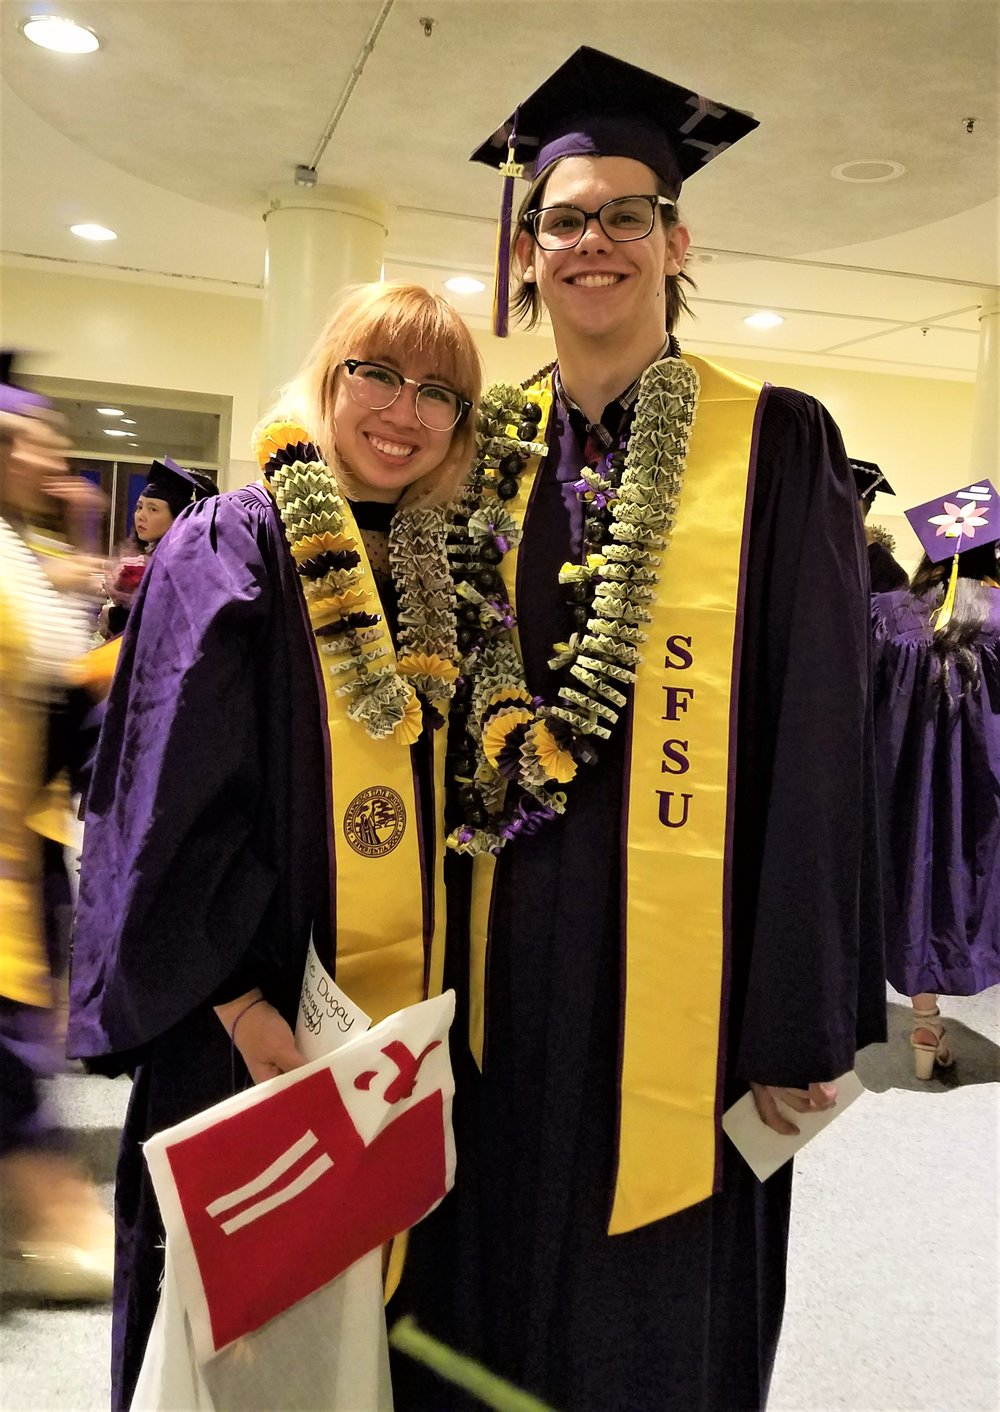 Joelle and Shane graduate from San Francisco State University